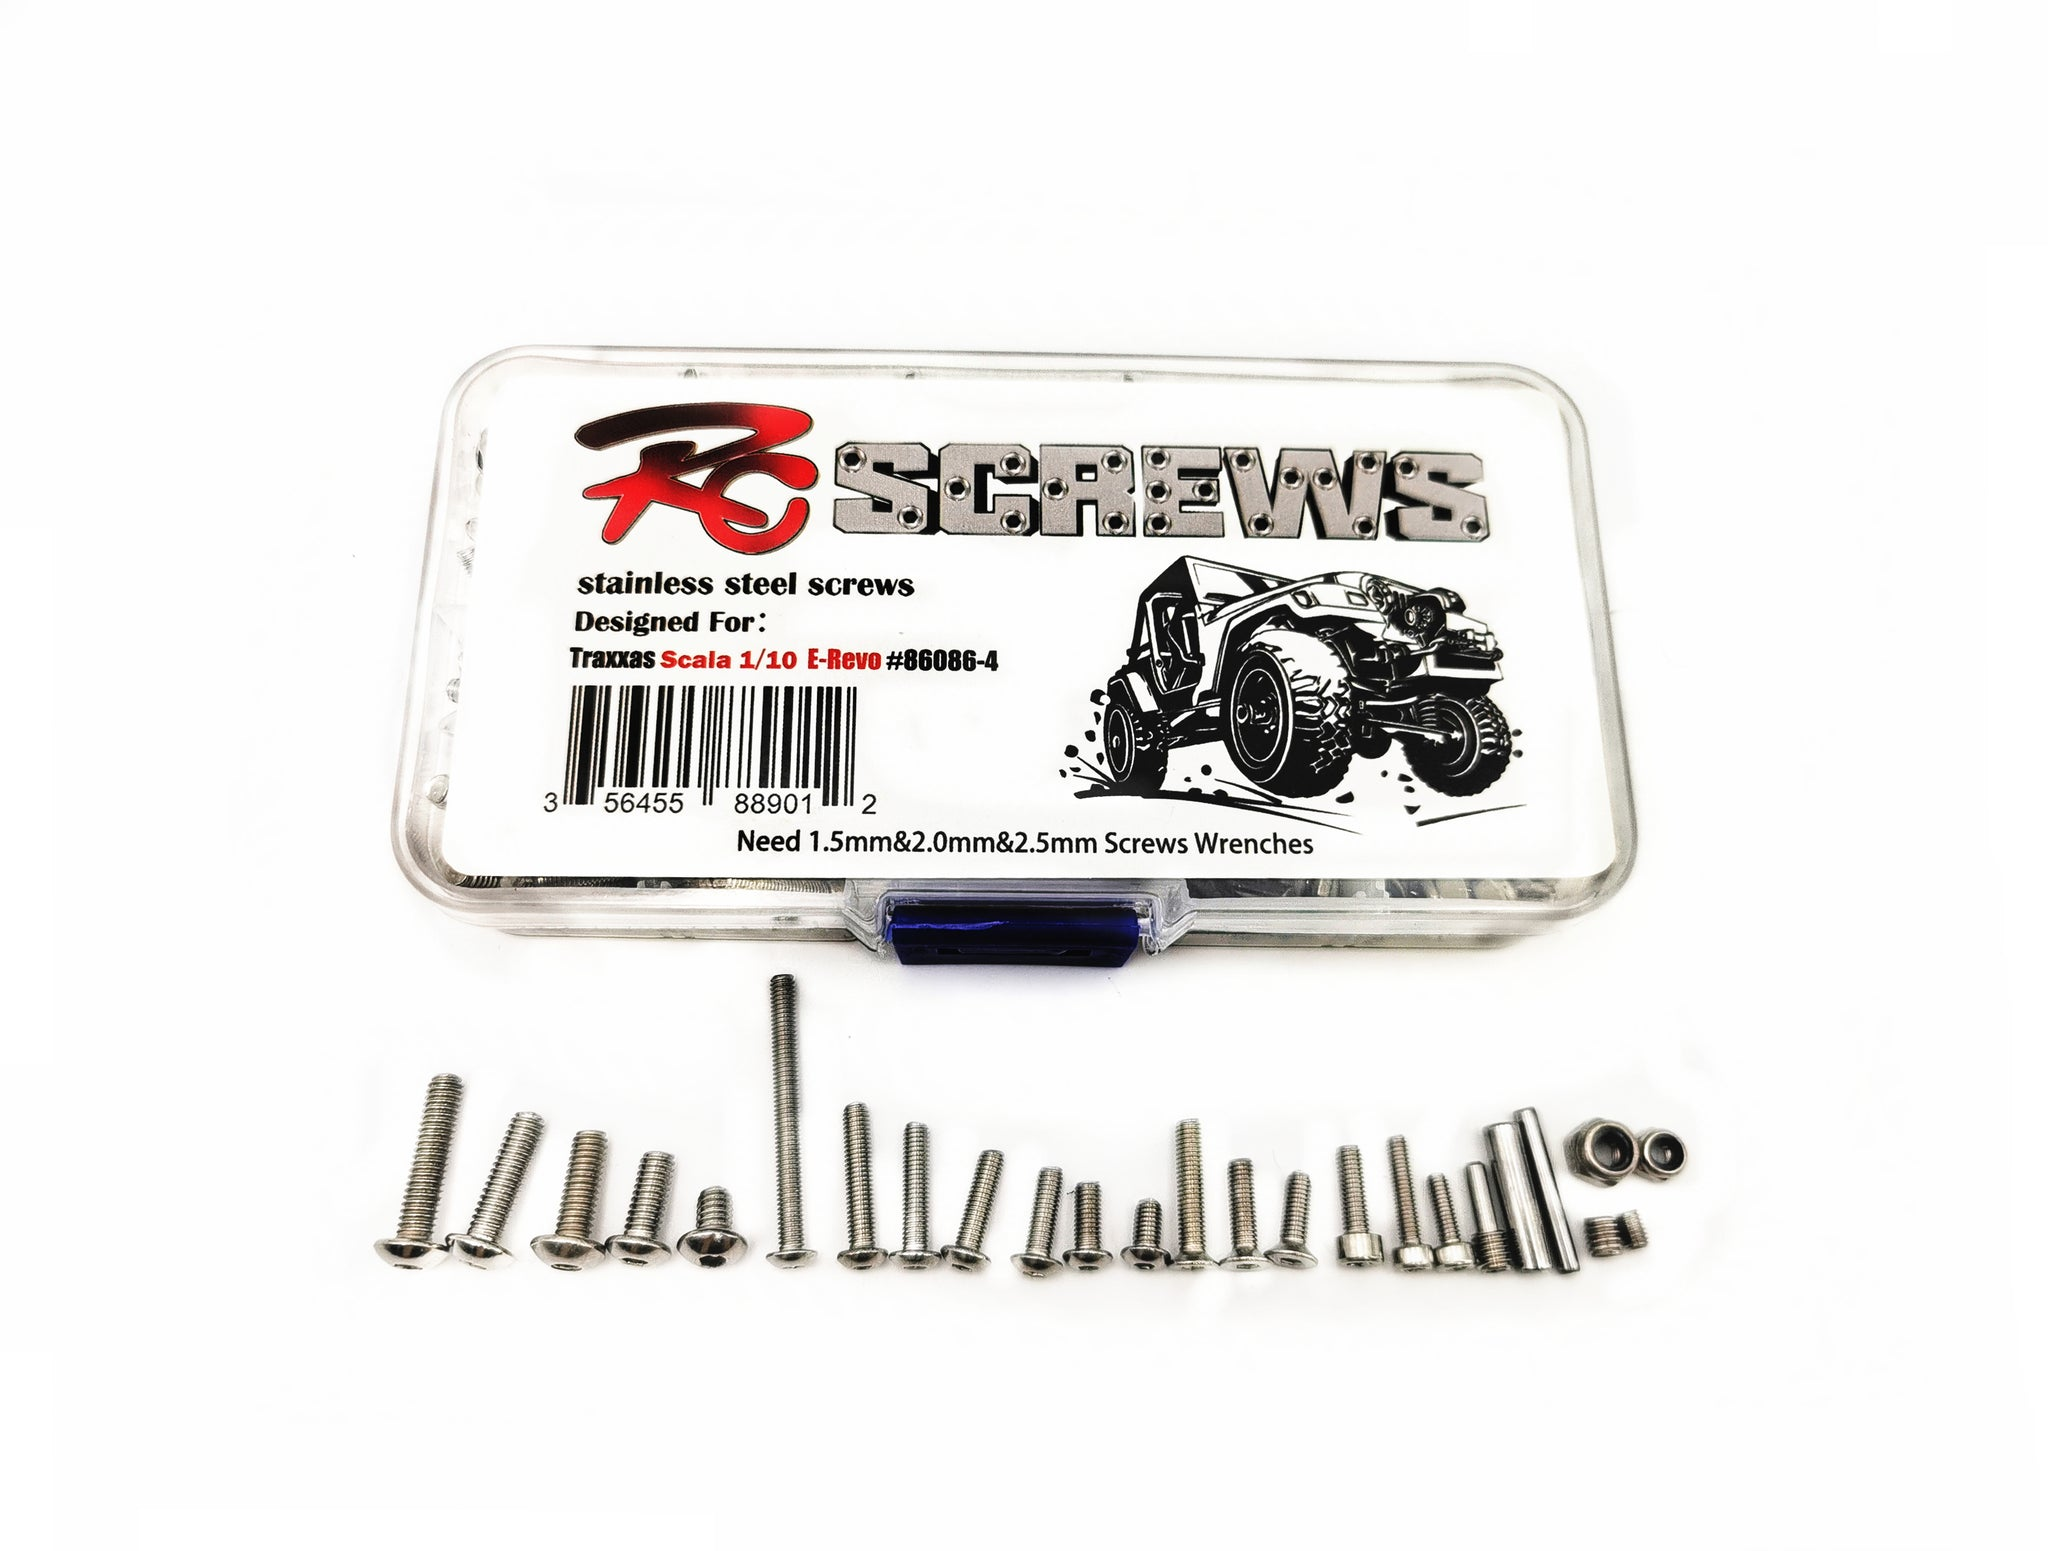 Traxxas TRX-4 Metal Machine Screw Nuts Kingpin for 1/10 Crawler Rc Car Parts